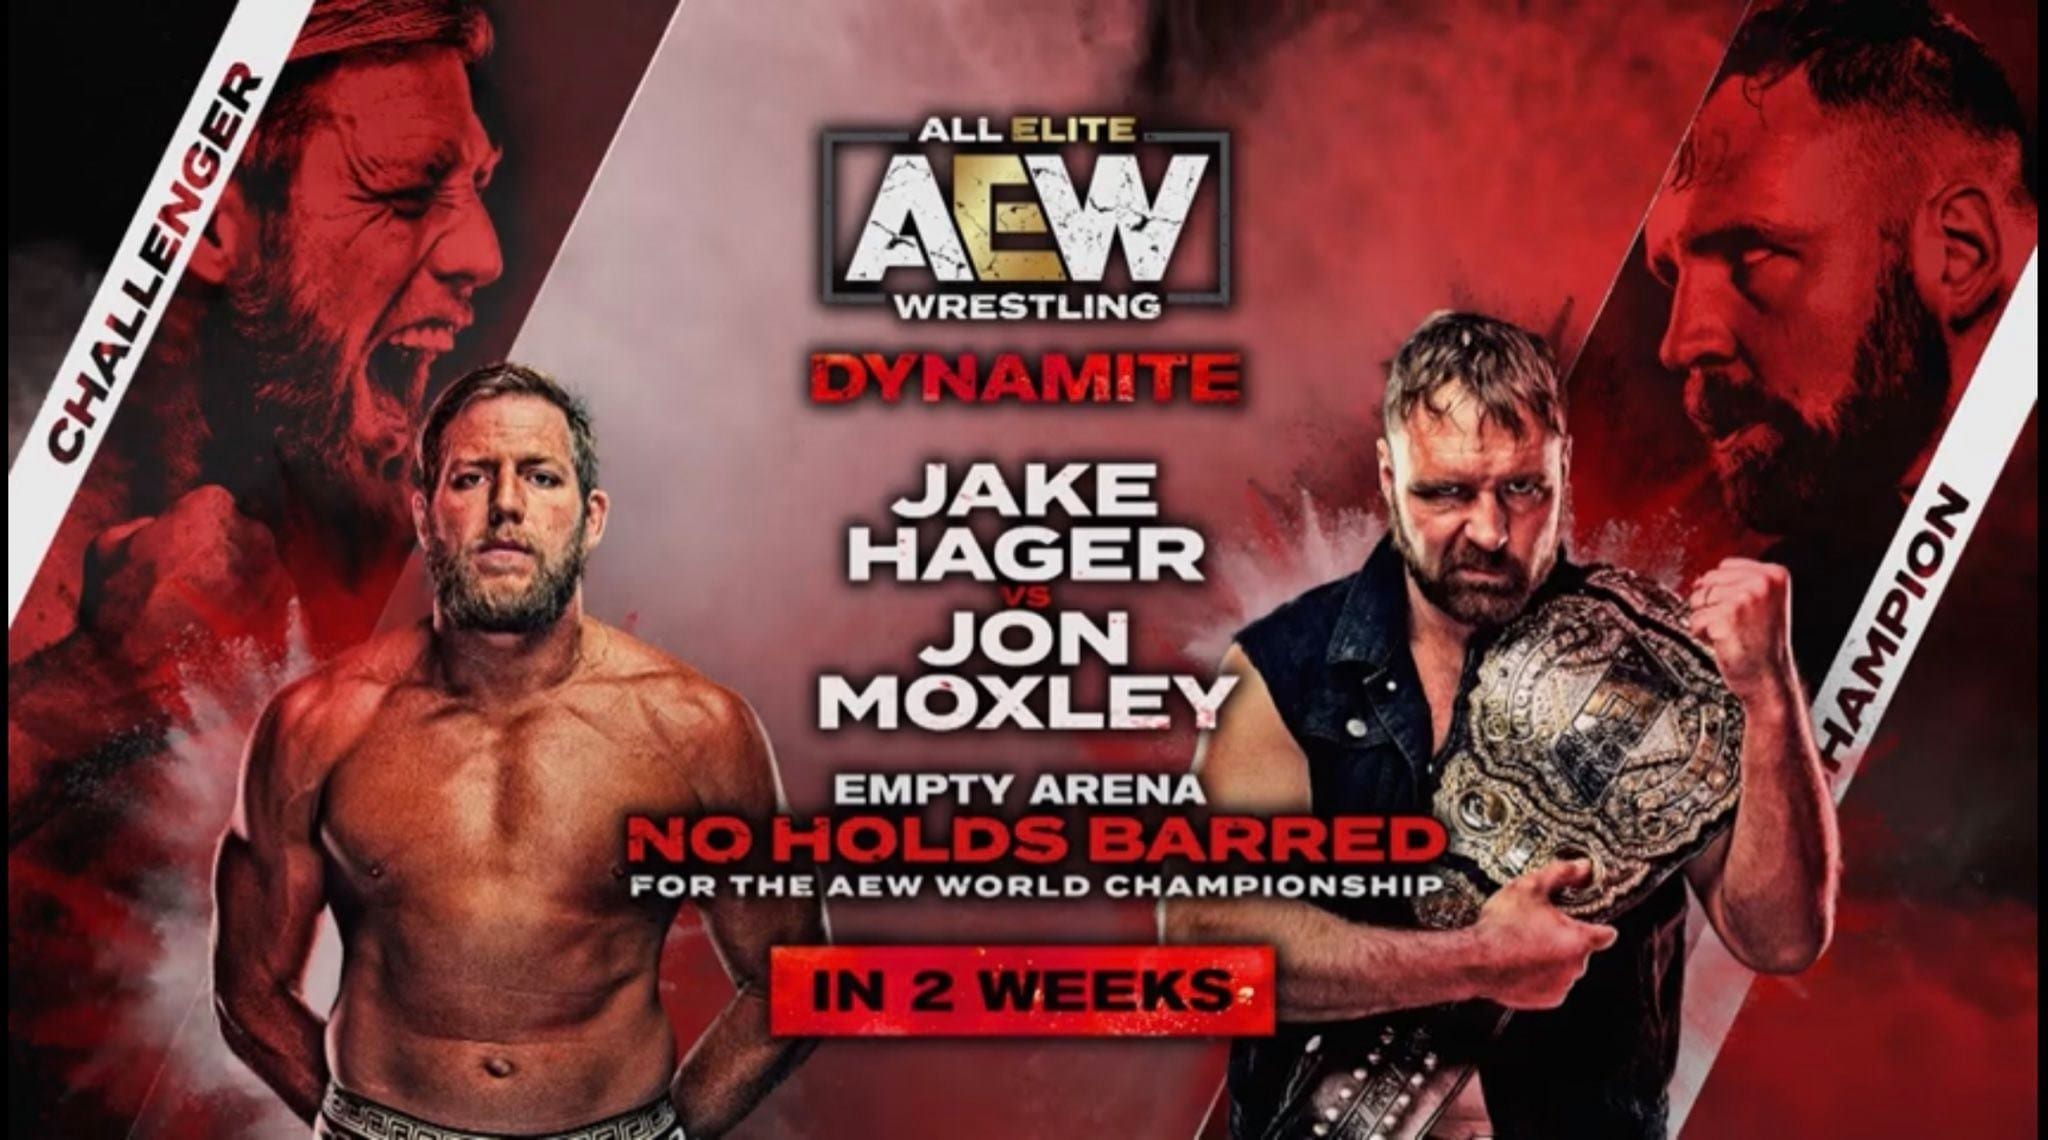 Jon Moxley vs Jake Hager for the AEW World Championship in an Empty Arena No Holds Barred match